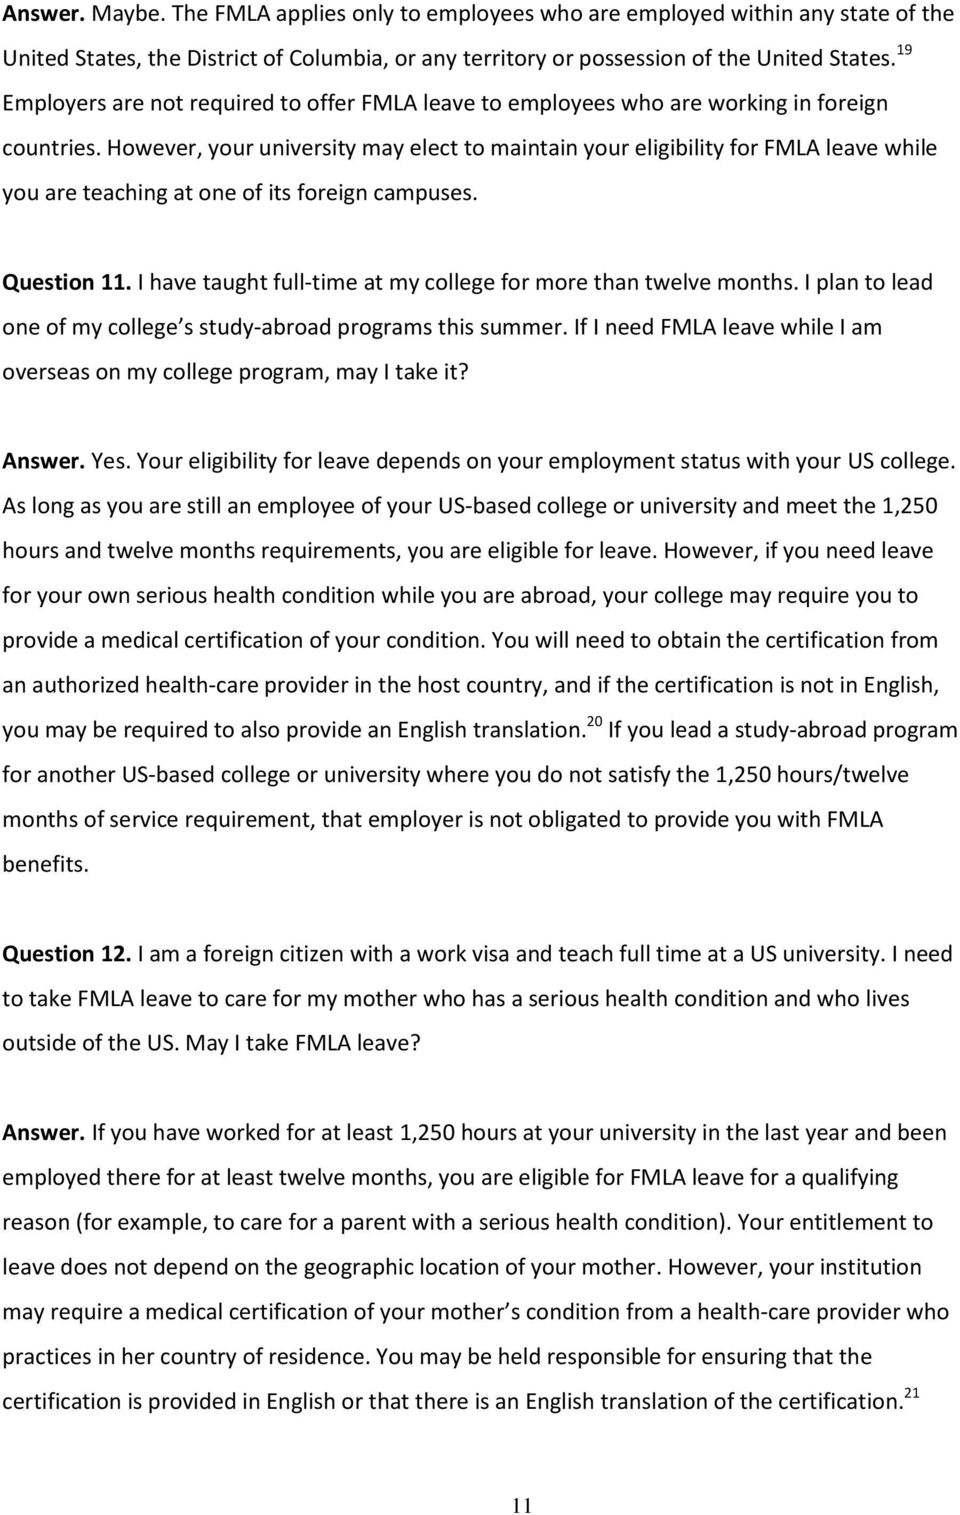 However, your university may elect to maintain your eligibility for FMLA leave while you are teaching at one of its foreign campuses. Question 11.